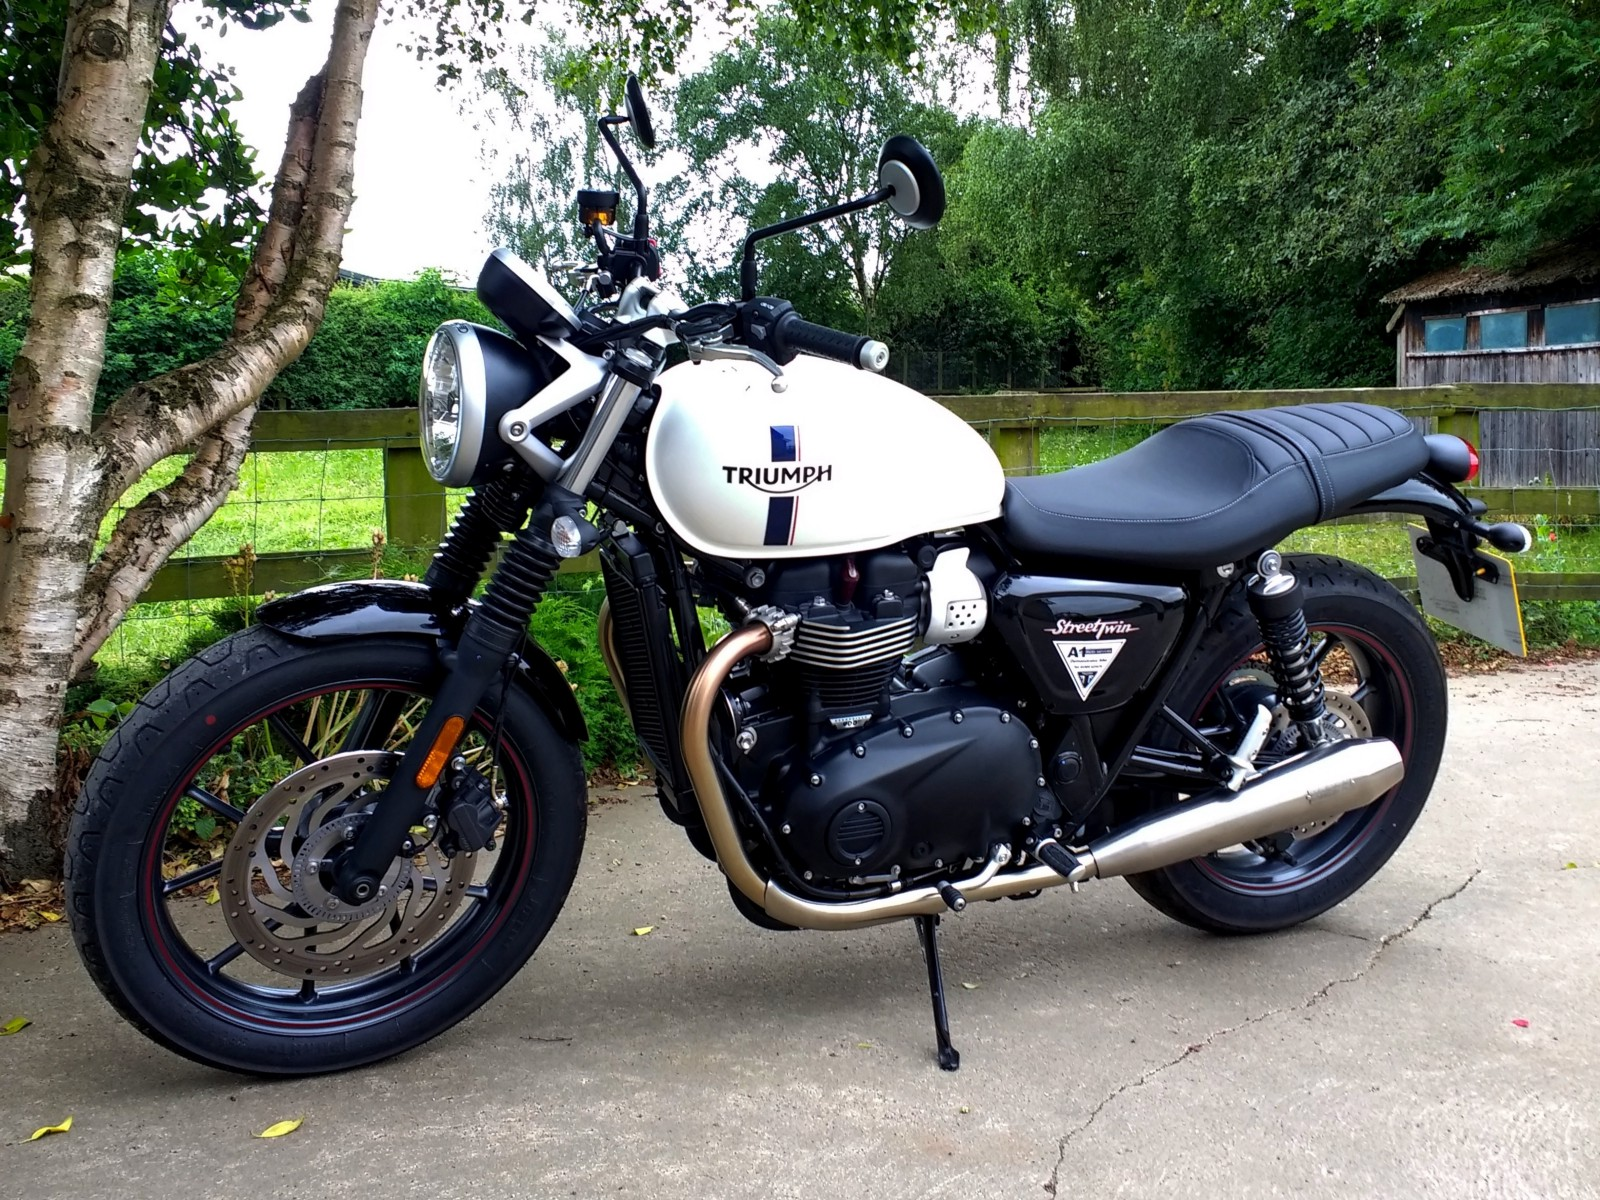 motorcycle review 2018 triumph street twin richard. Black Bedroom Furniture Sets. Home Design Ideas